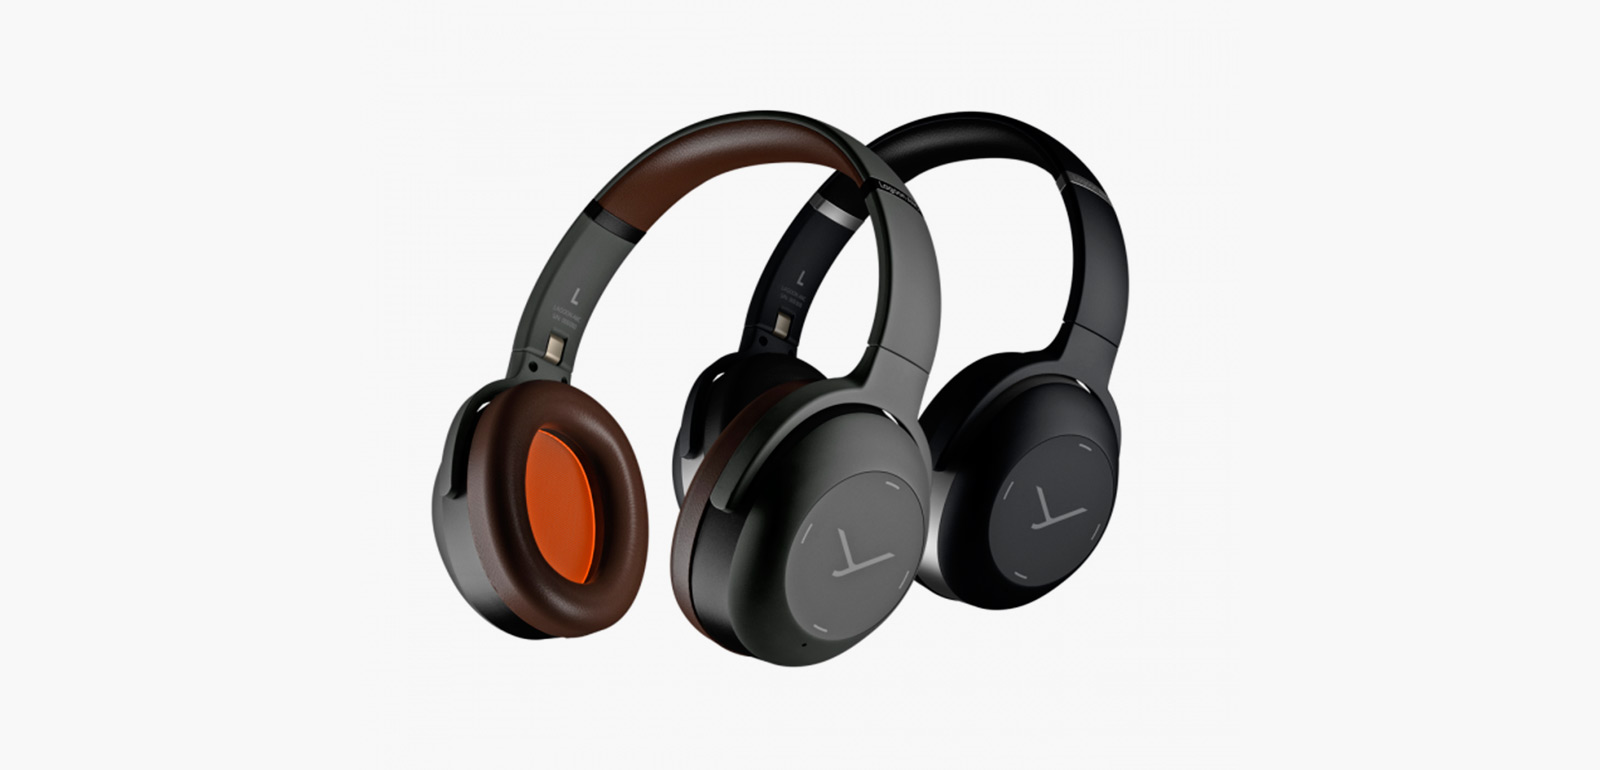 468215d79af beyerdynamic Lagoon ANC Wireless Headphones - IMBOLDN